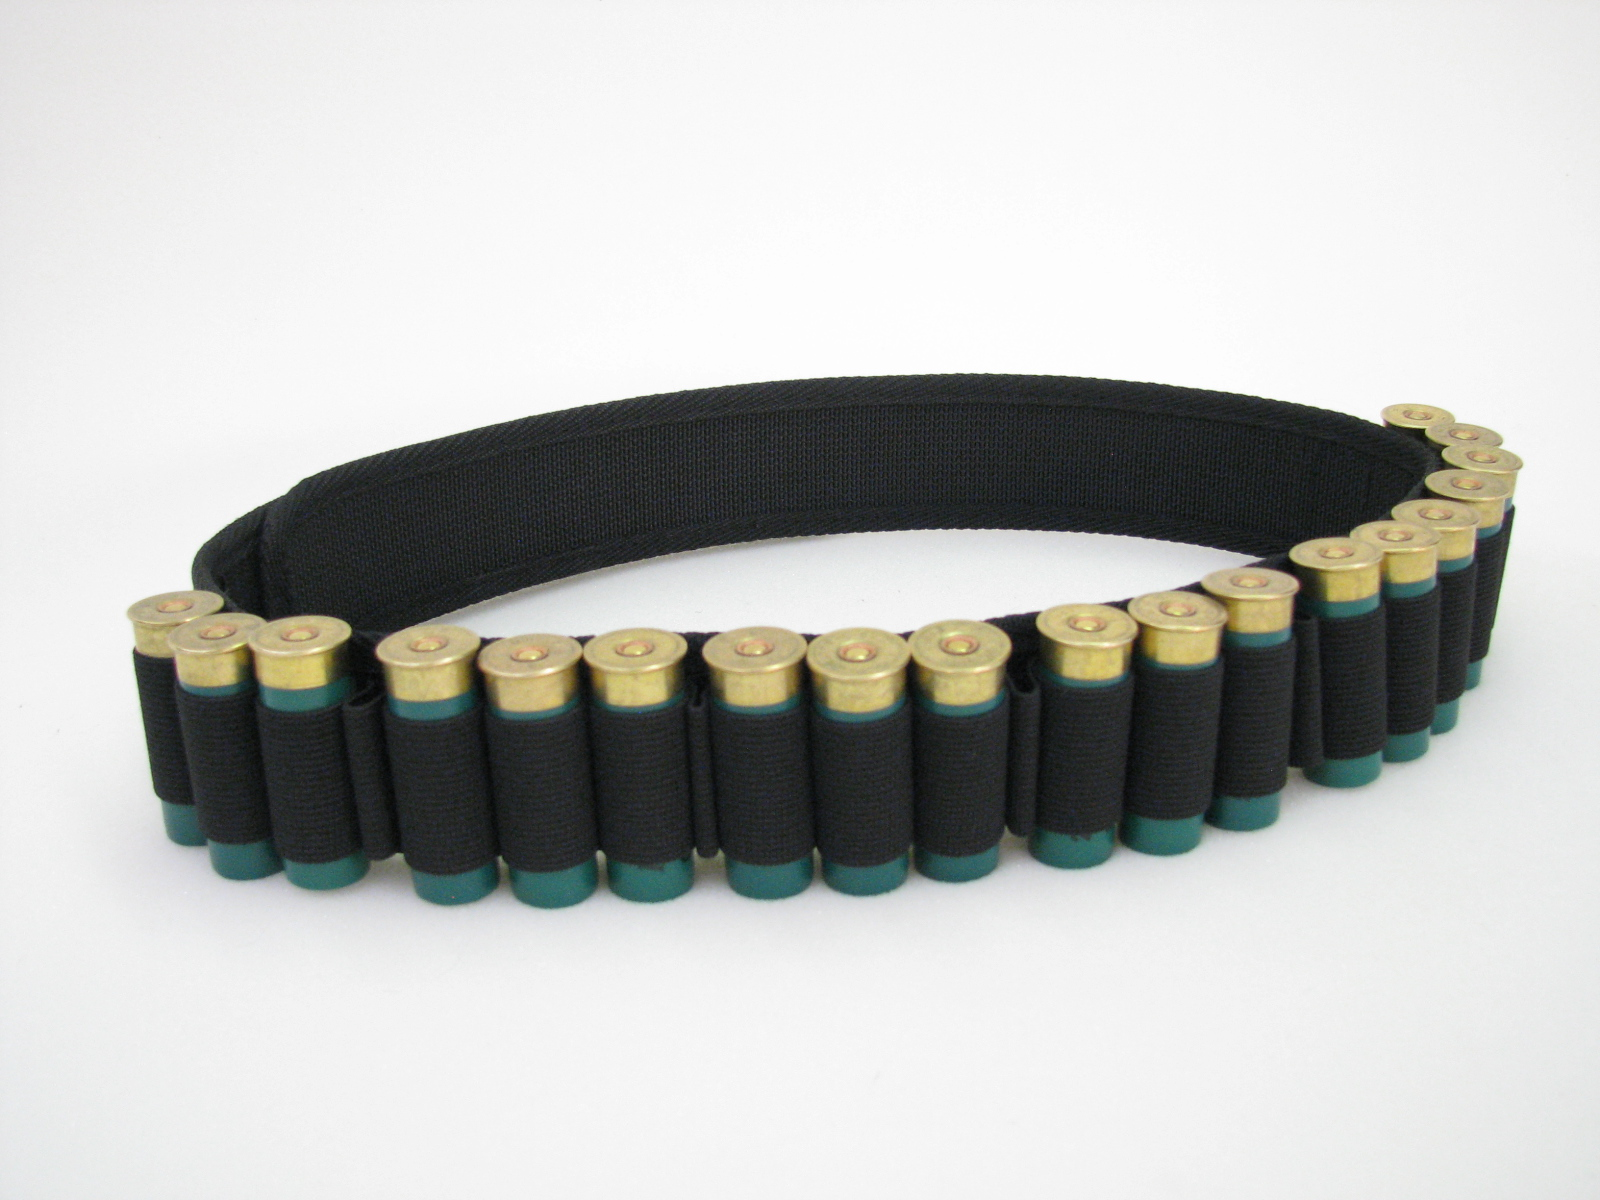 Cartridge Belts and Carriers